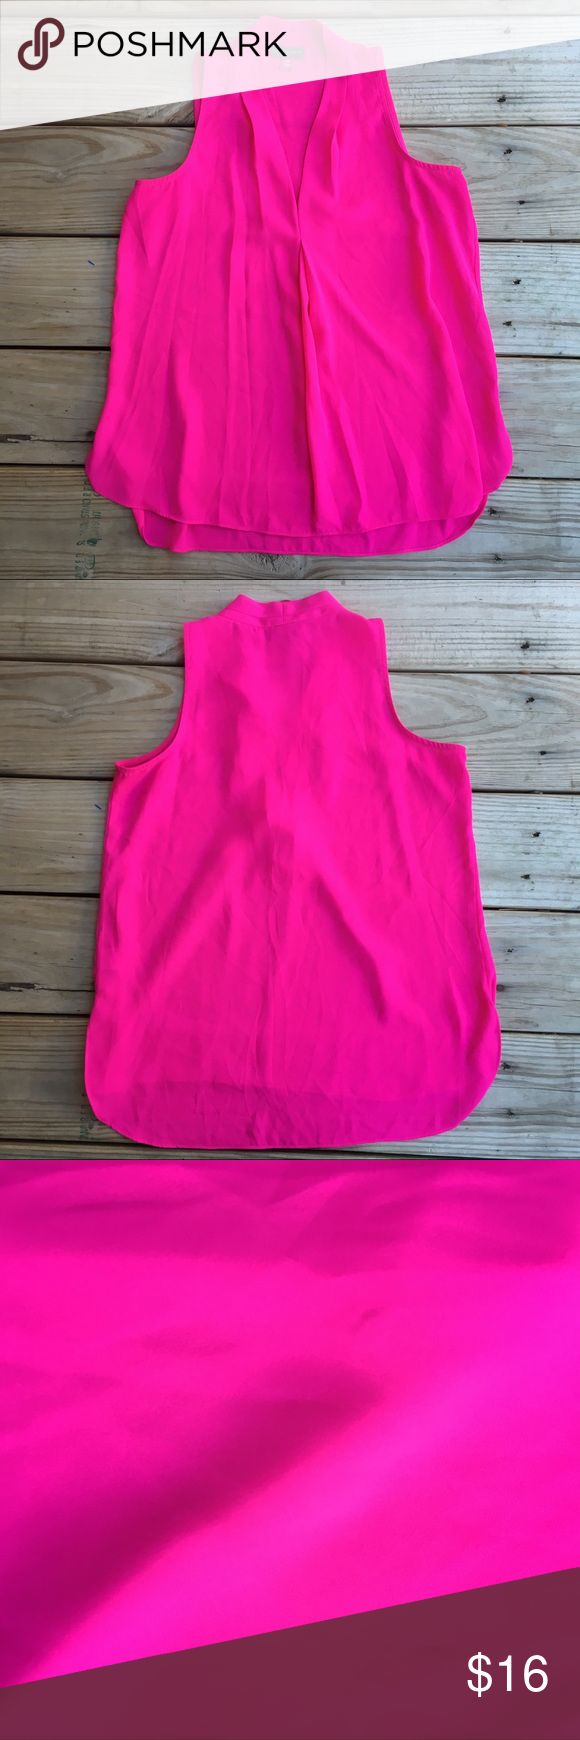 Vince Camuto Hot Pink Blouse Vince Camuto Hot Pink Blouse. Size PXS. No rips or stains Vince Camuto Tops Blouses